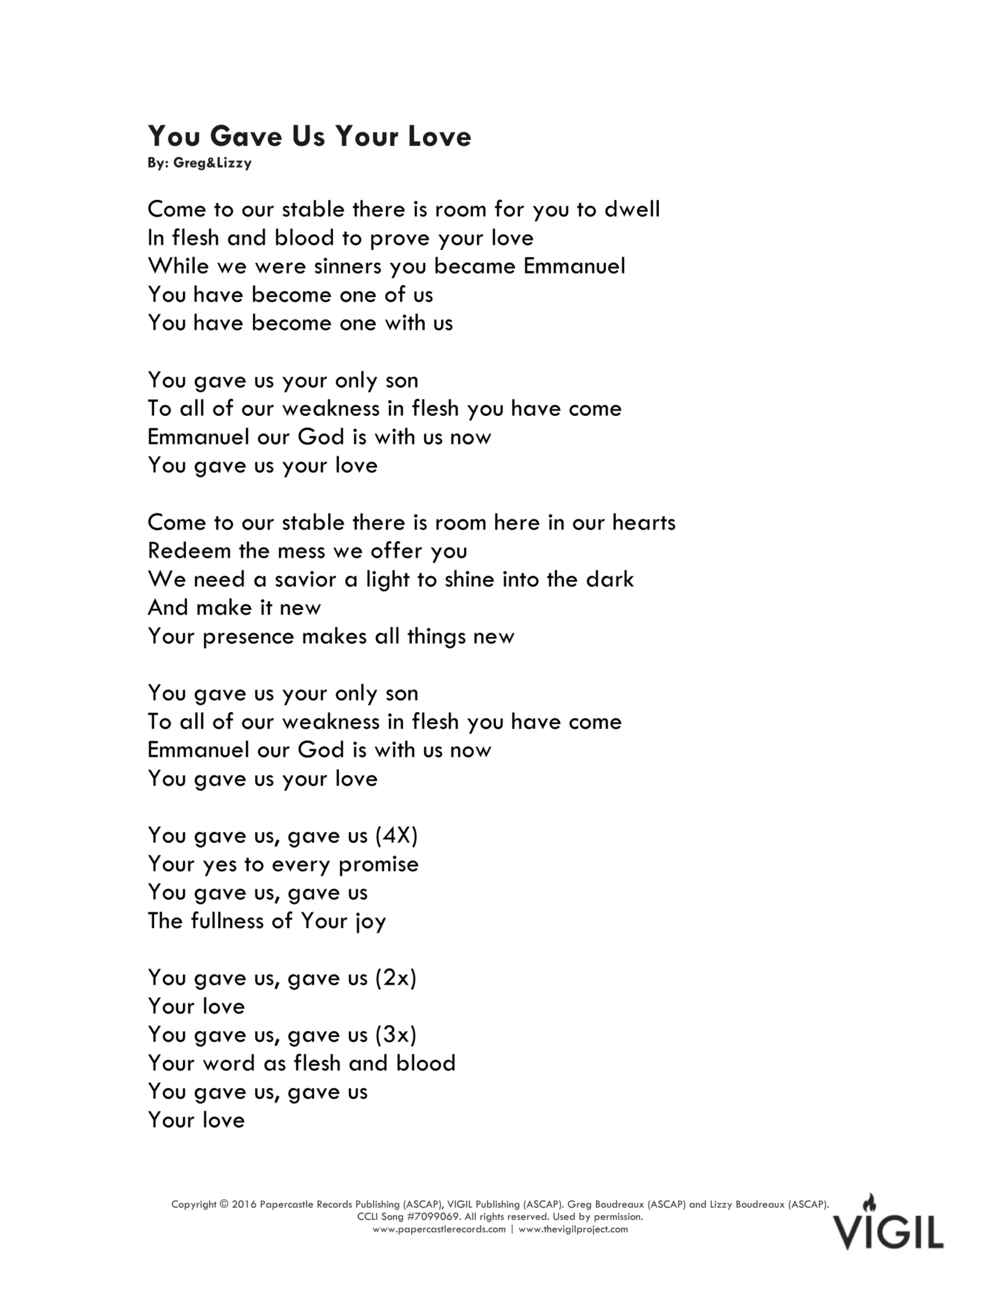 VIGIL S2 - You Gave Us Your Love (Lyrics)-1.png